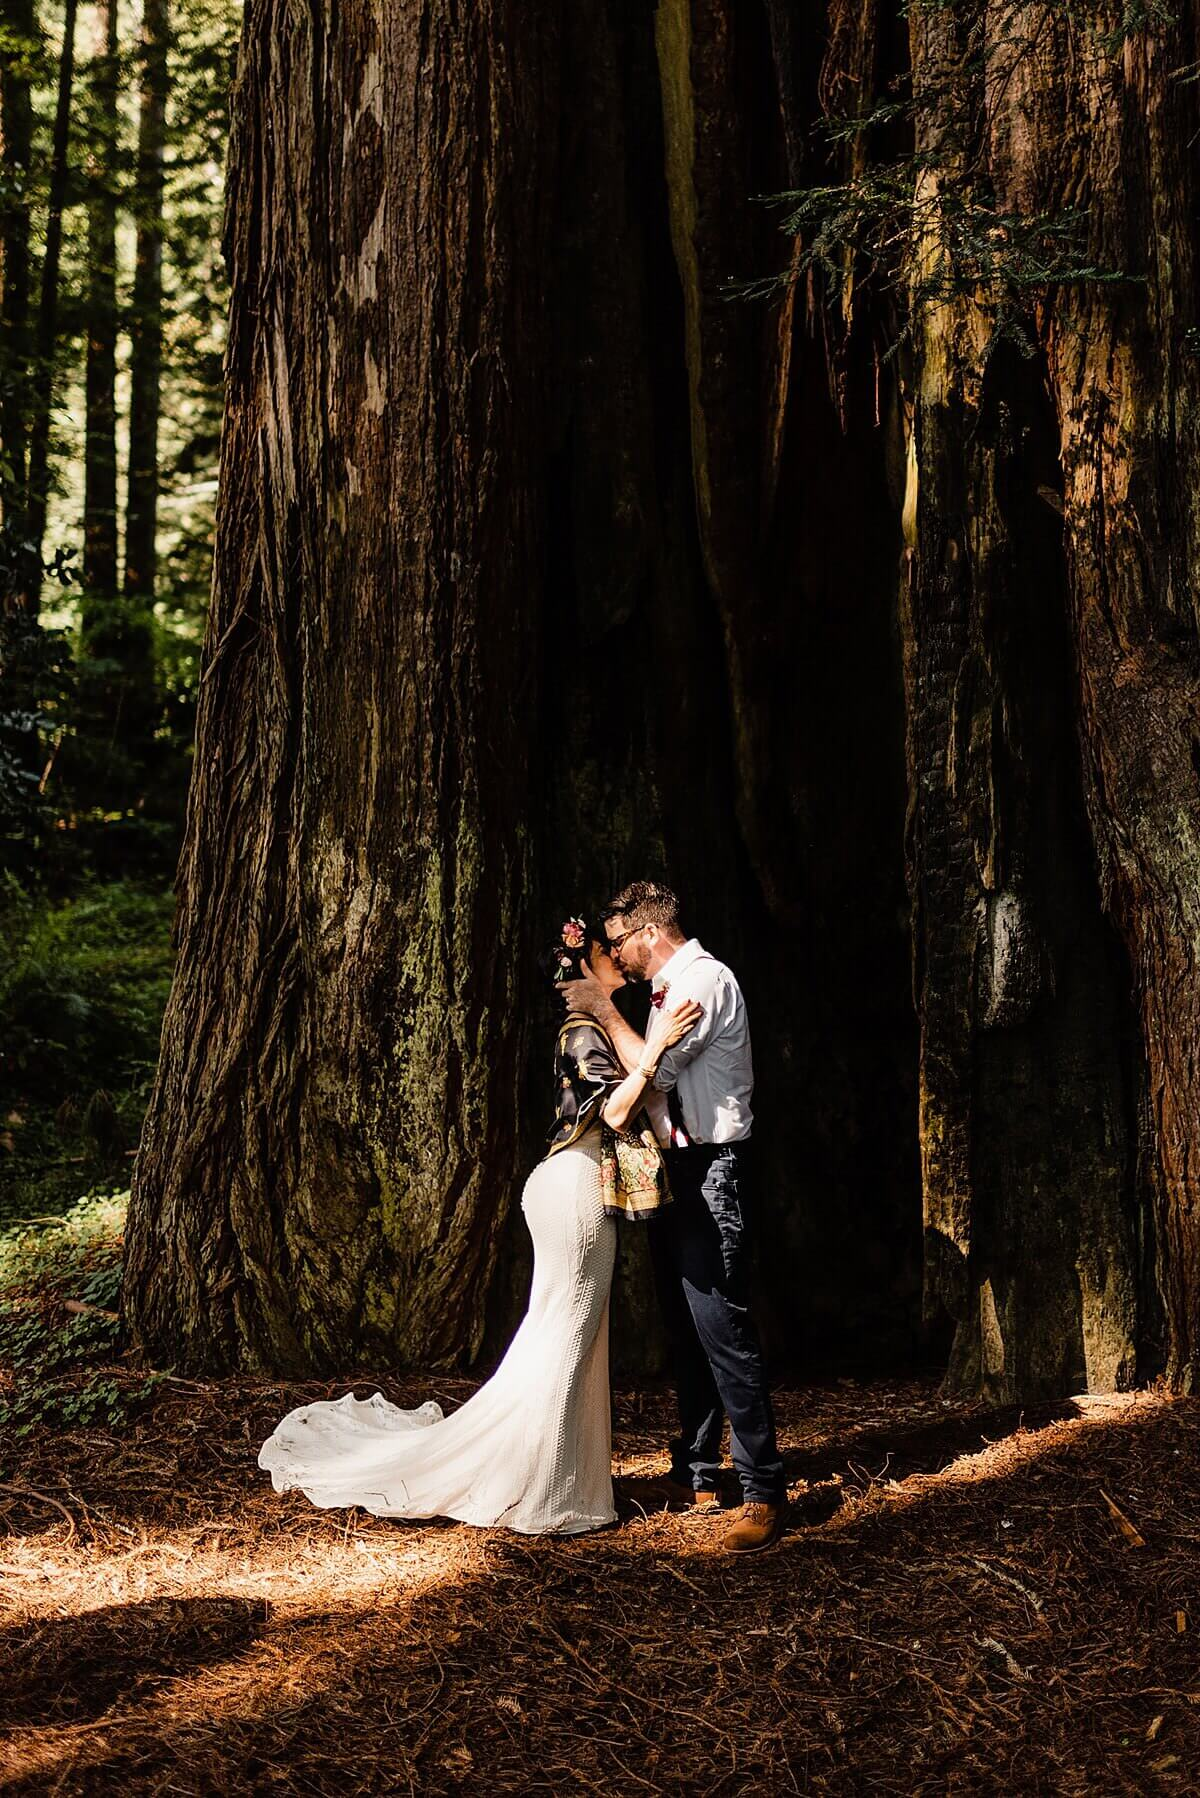 Allison-Brooks-Jedediah-Smiith-Redwoods-Adventure-Elopement-Wedding-S-Photography-Blog_0025.jpg